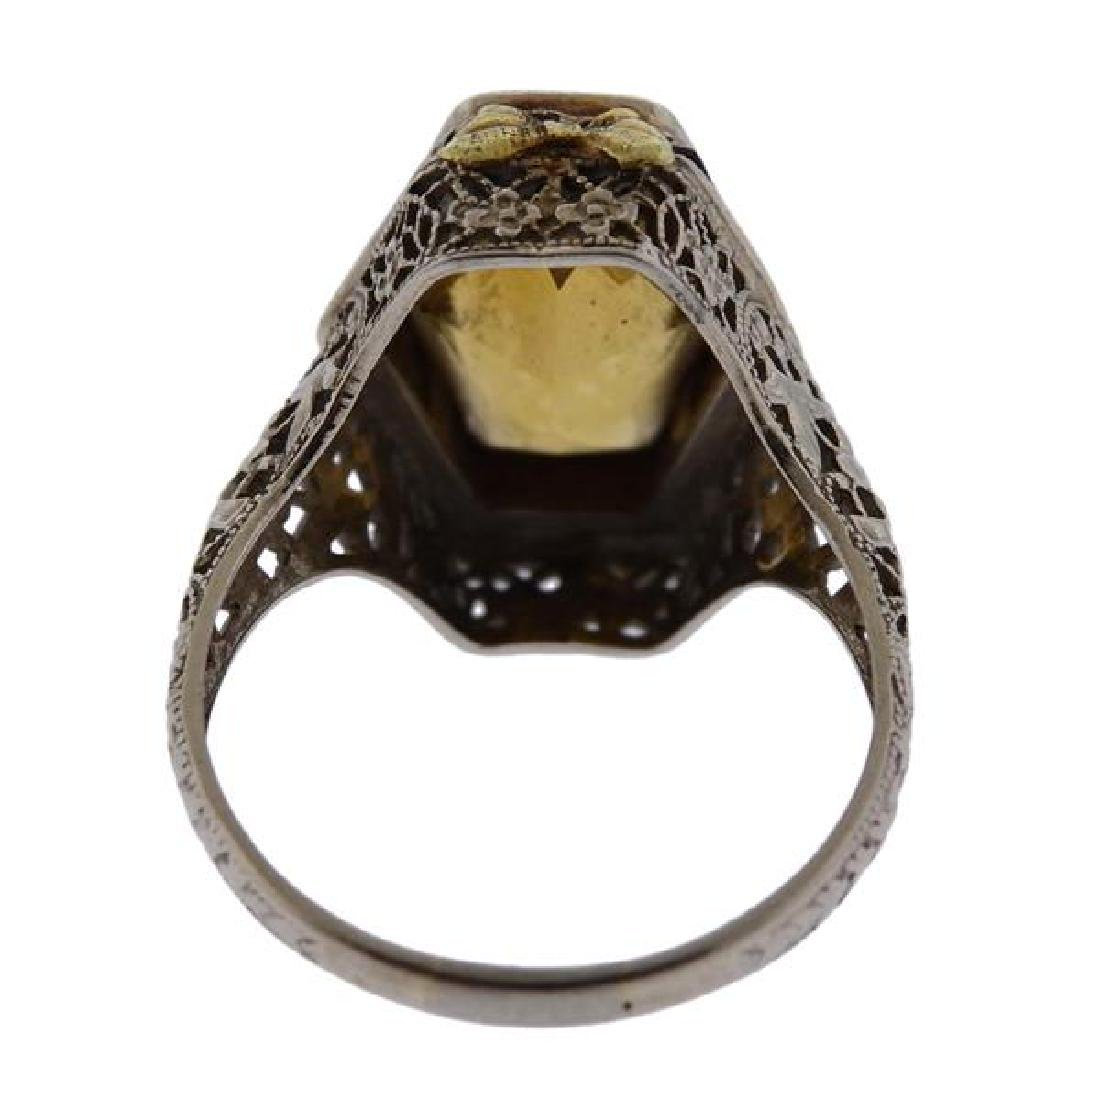 Art Deco Filigree 14K Gold Yellow Stone Ring - 3